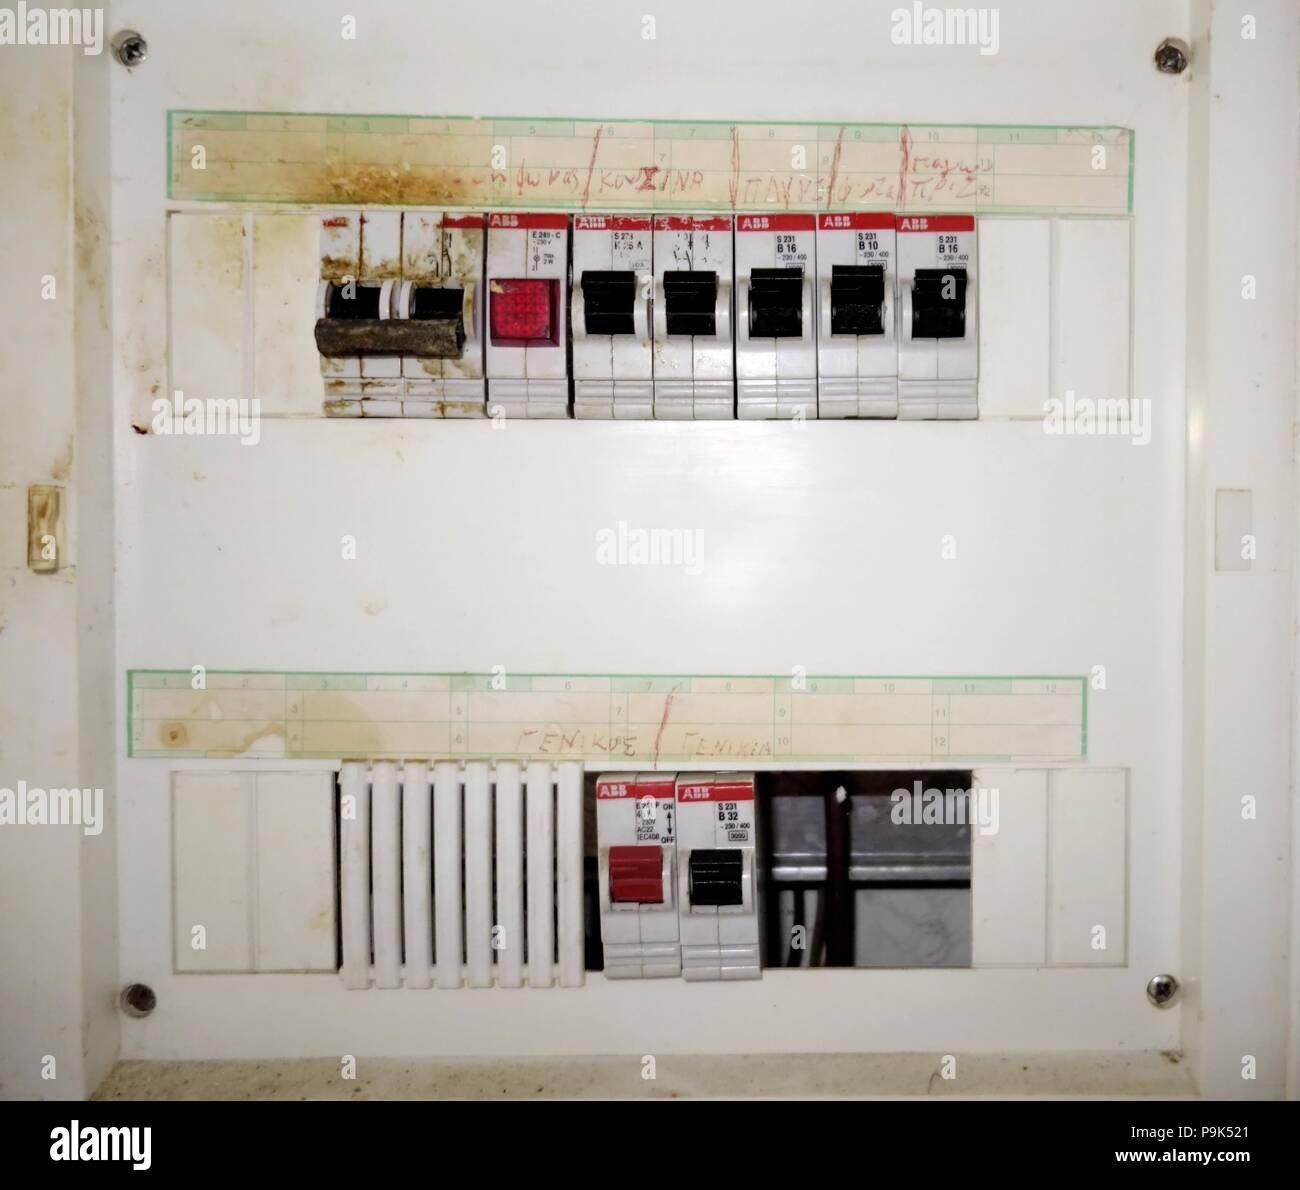 Home Built Fuse Box Old Fuses Stock Photos Images Greek Image